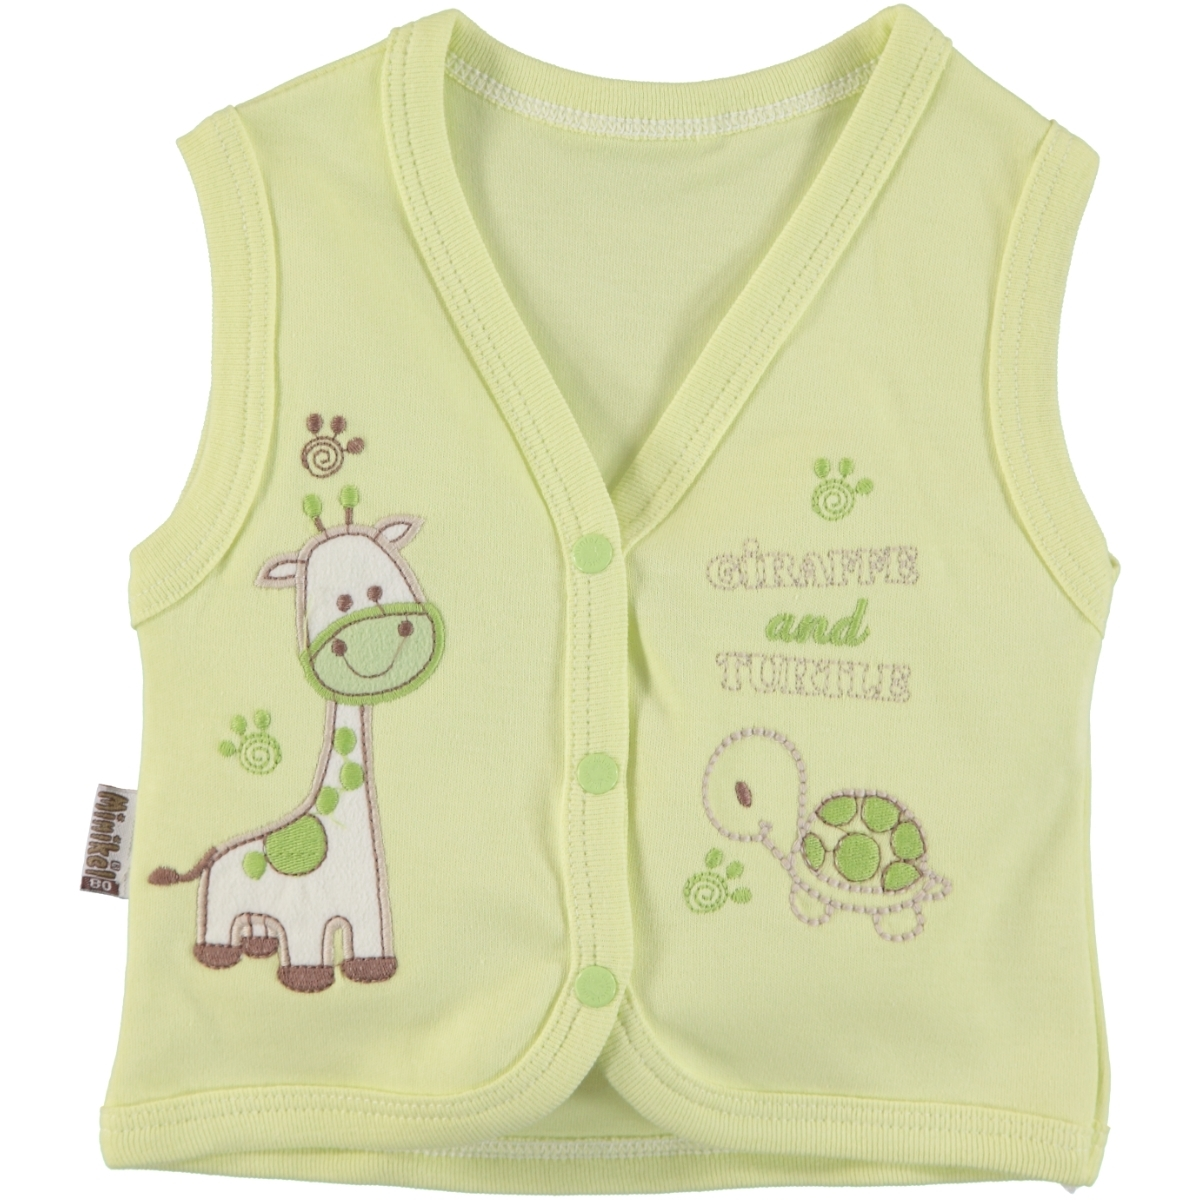 Minikel Yesil Combed Cotton Vest 12-24 Months